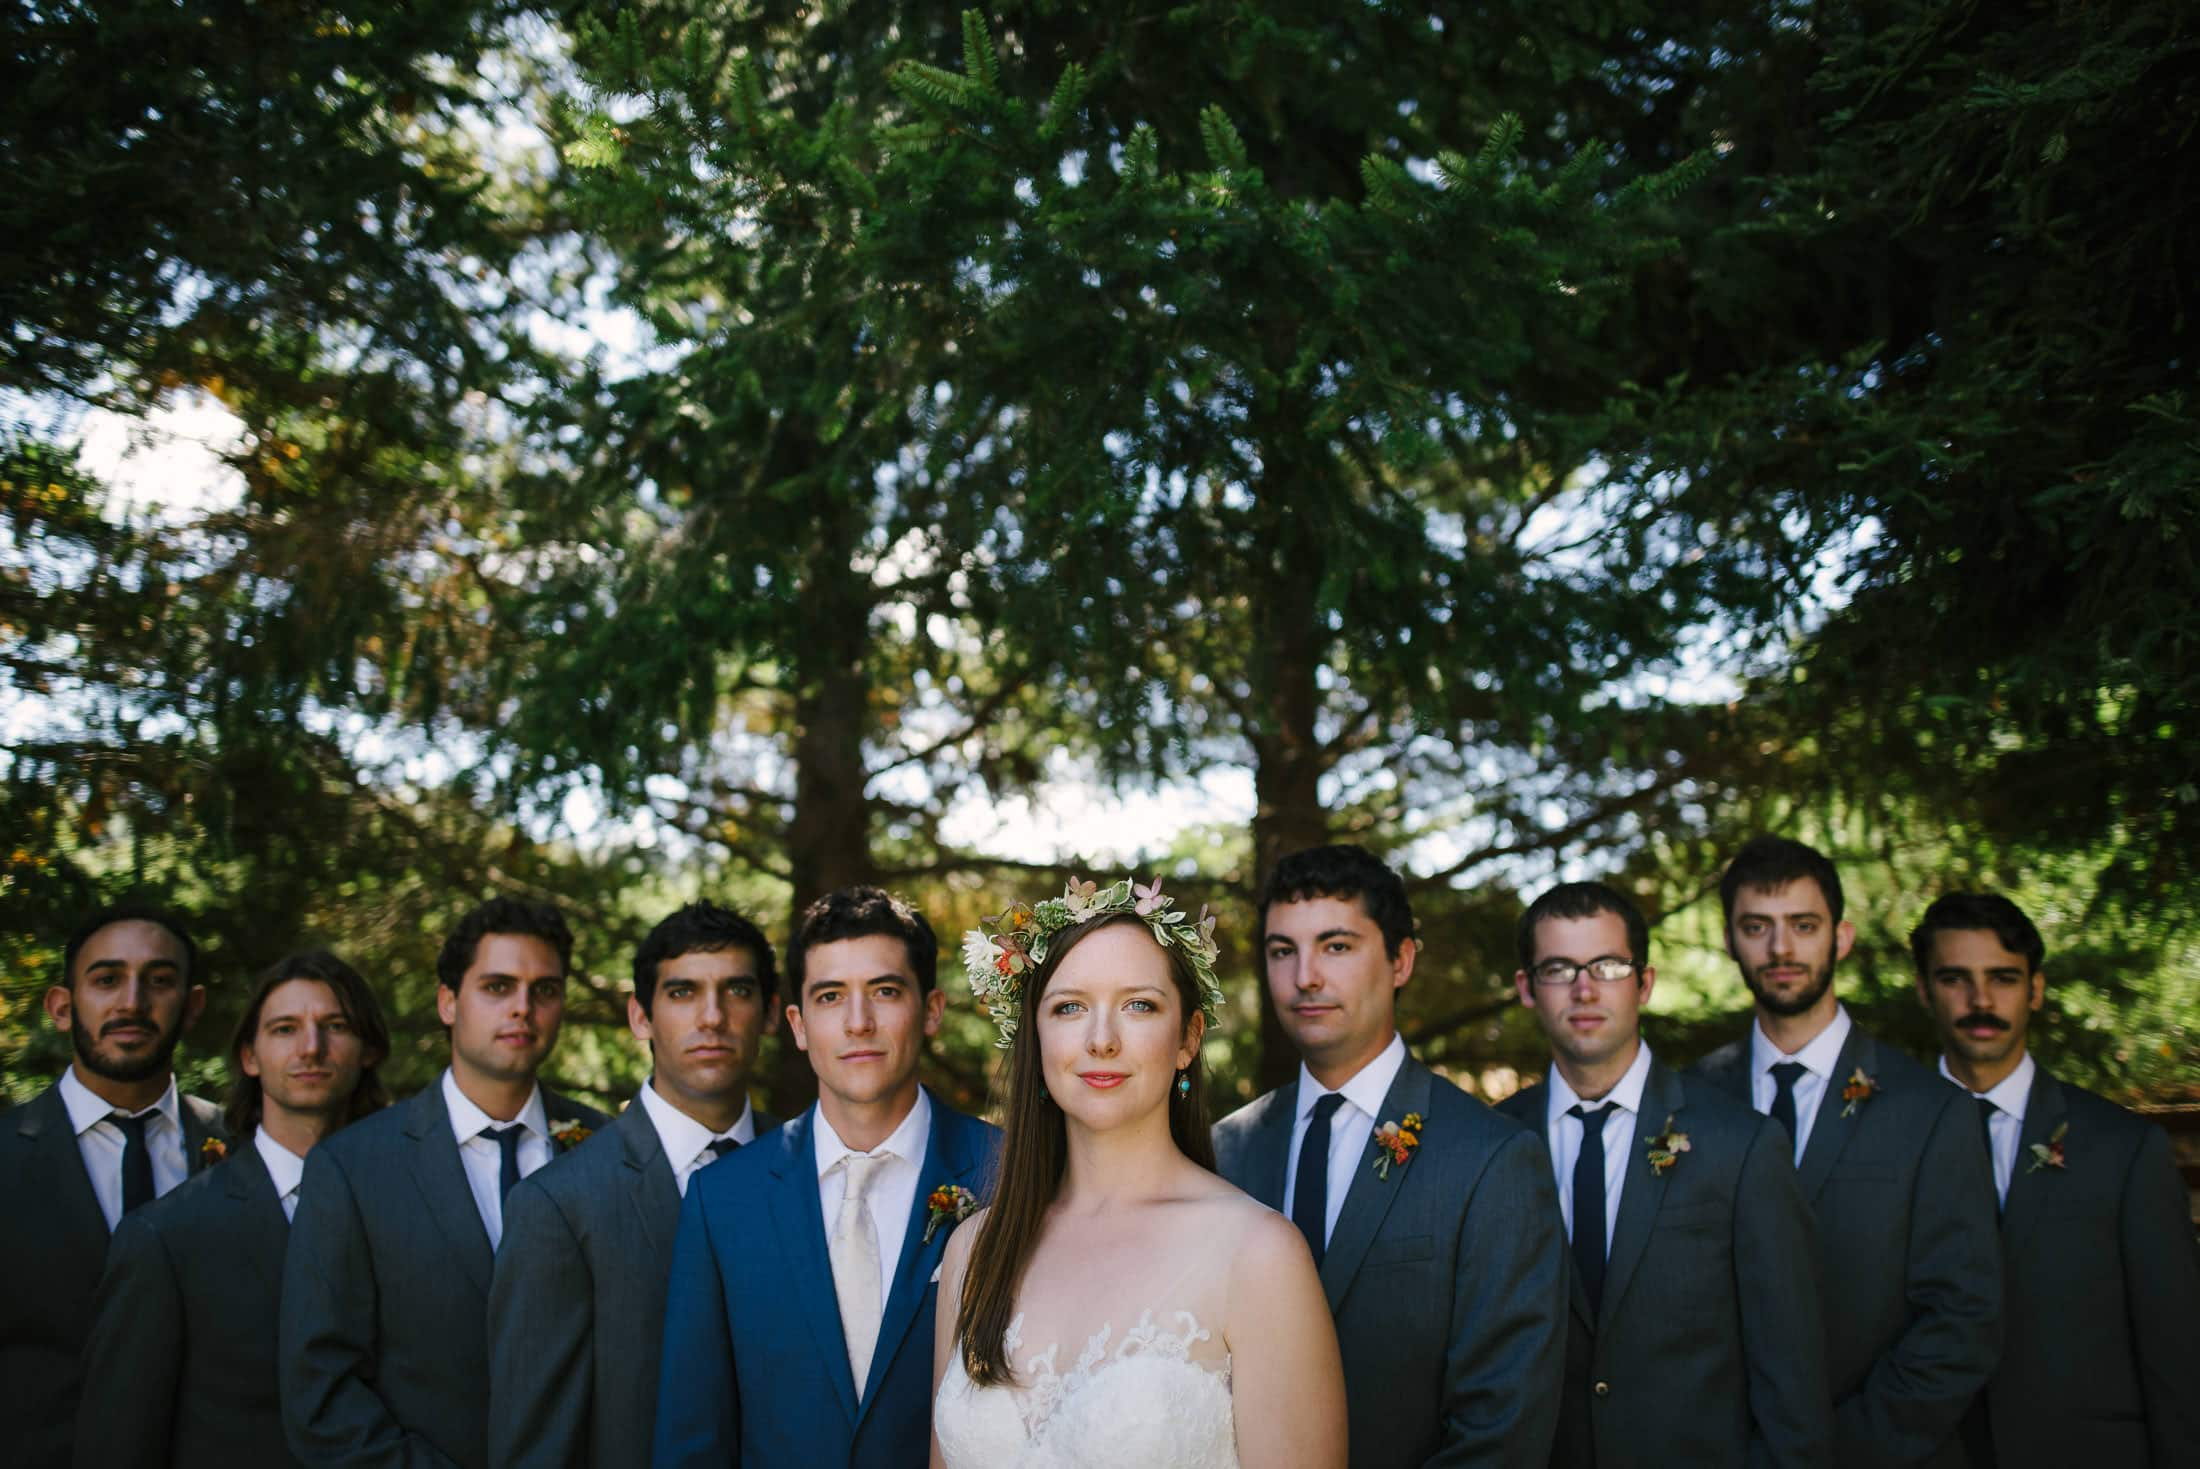 epic wedding party portrait at rancho nicasio in marin